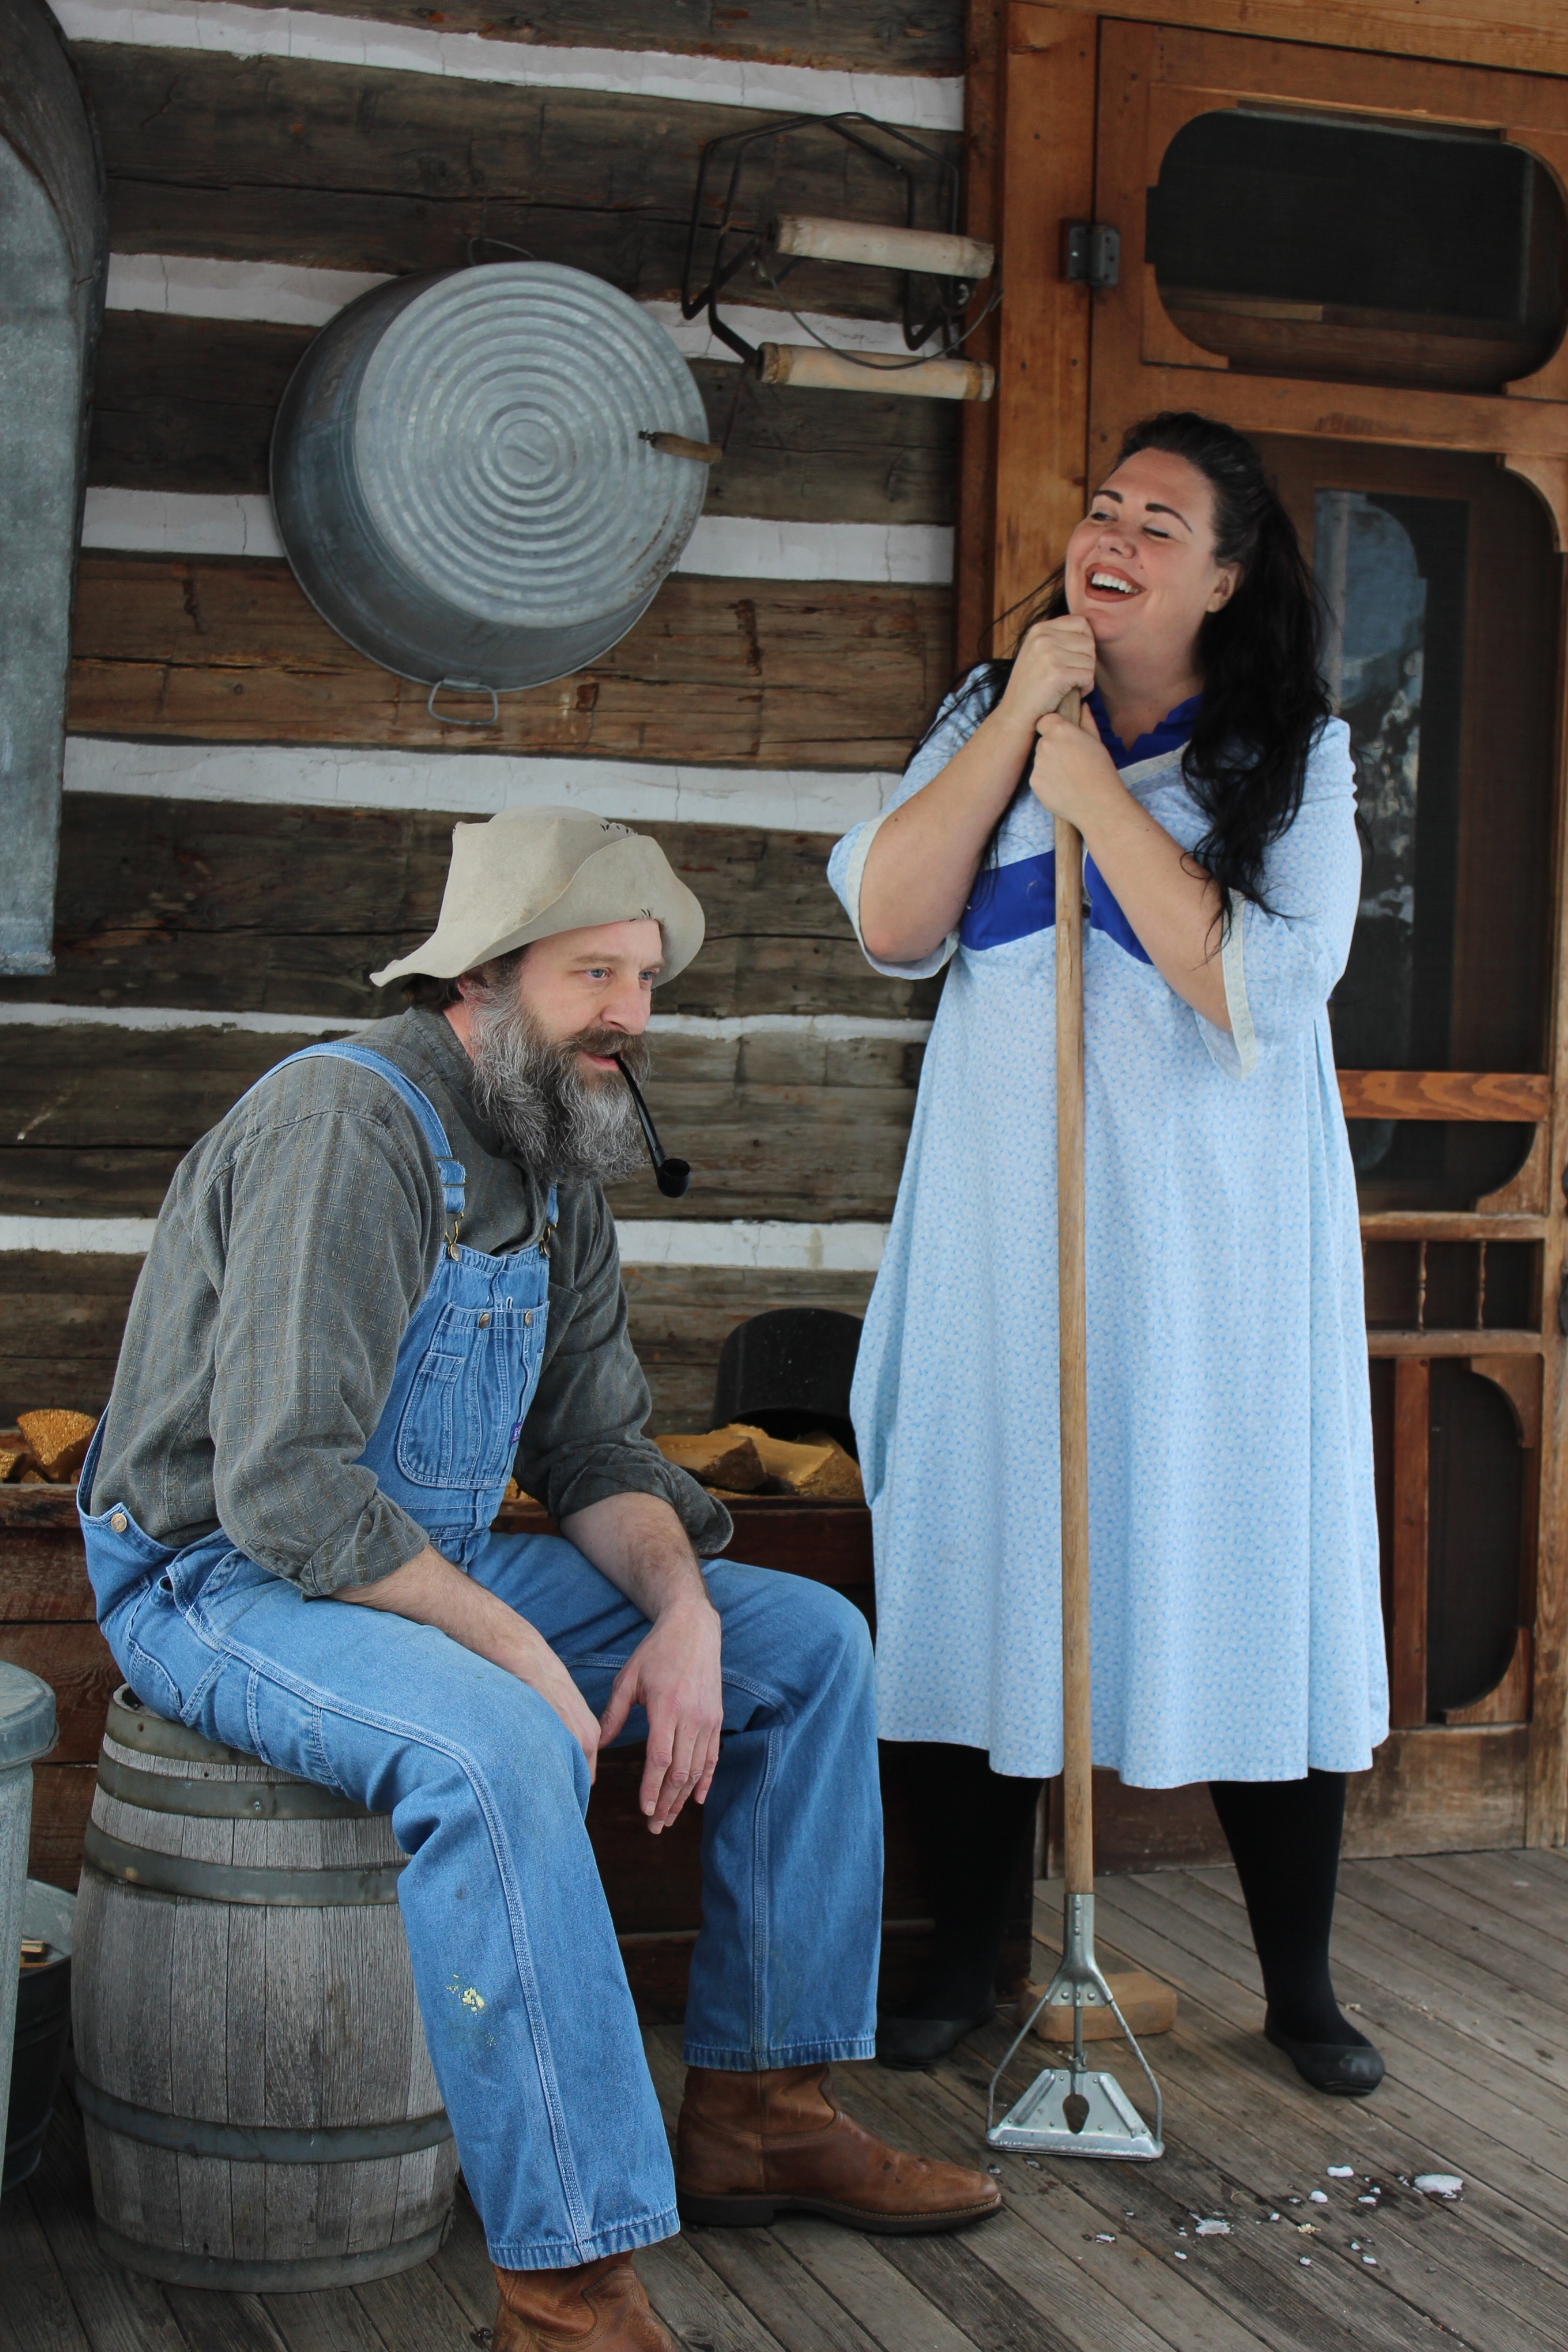 Mike Hesford and Kari Doll_A Moon for the Misbegotten.JPG